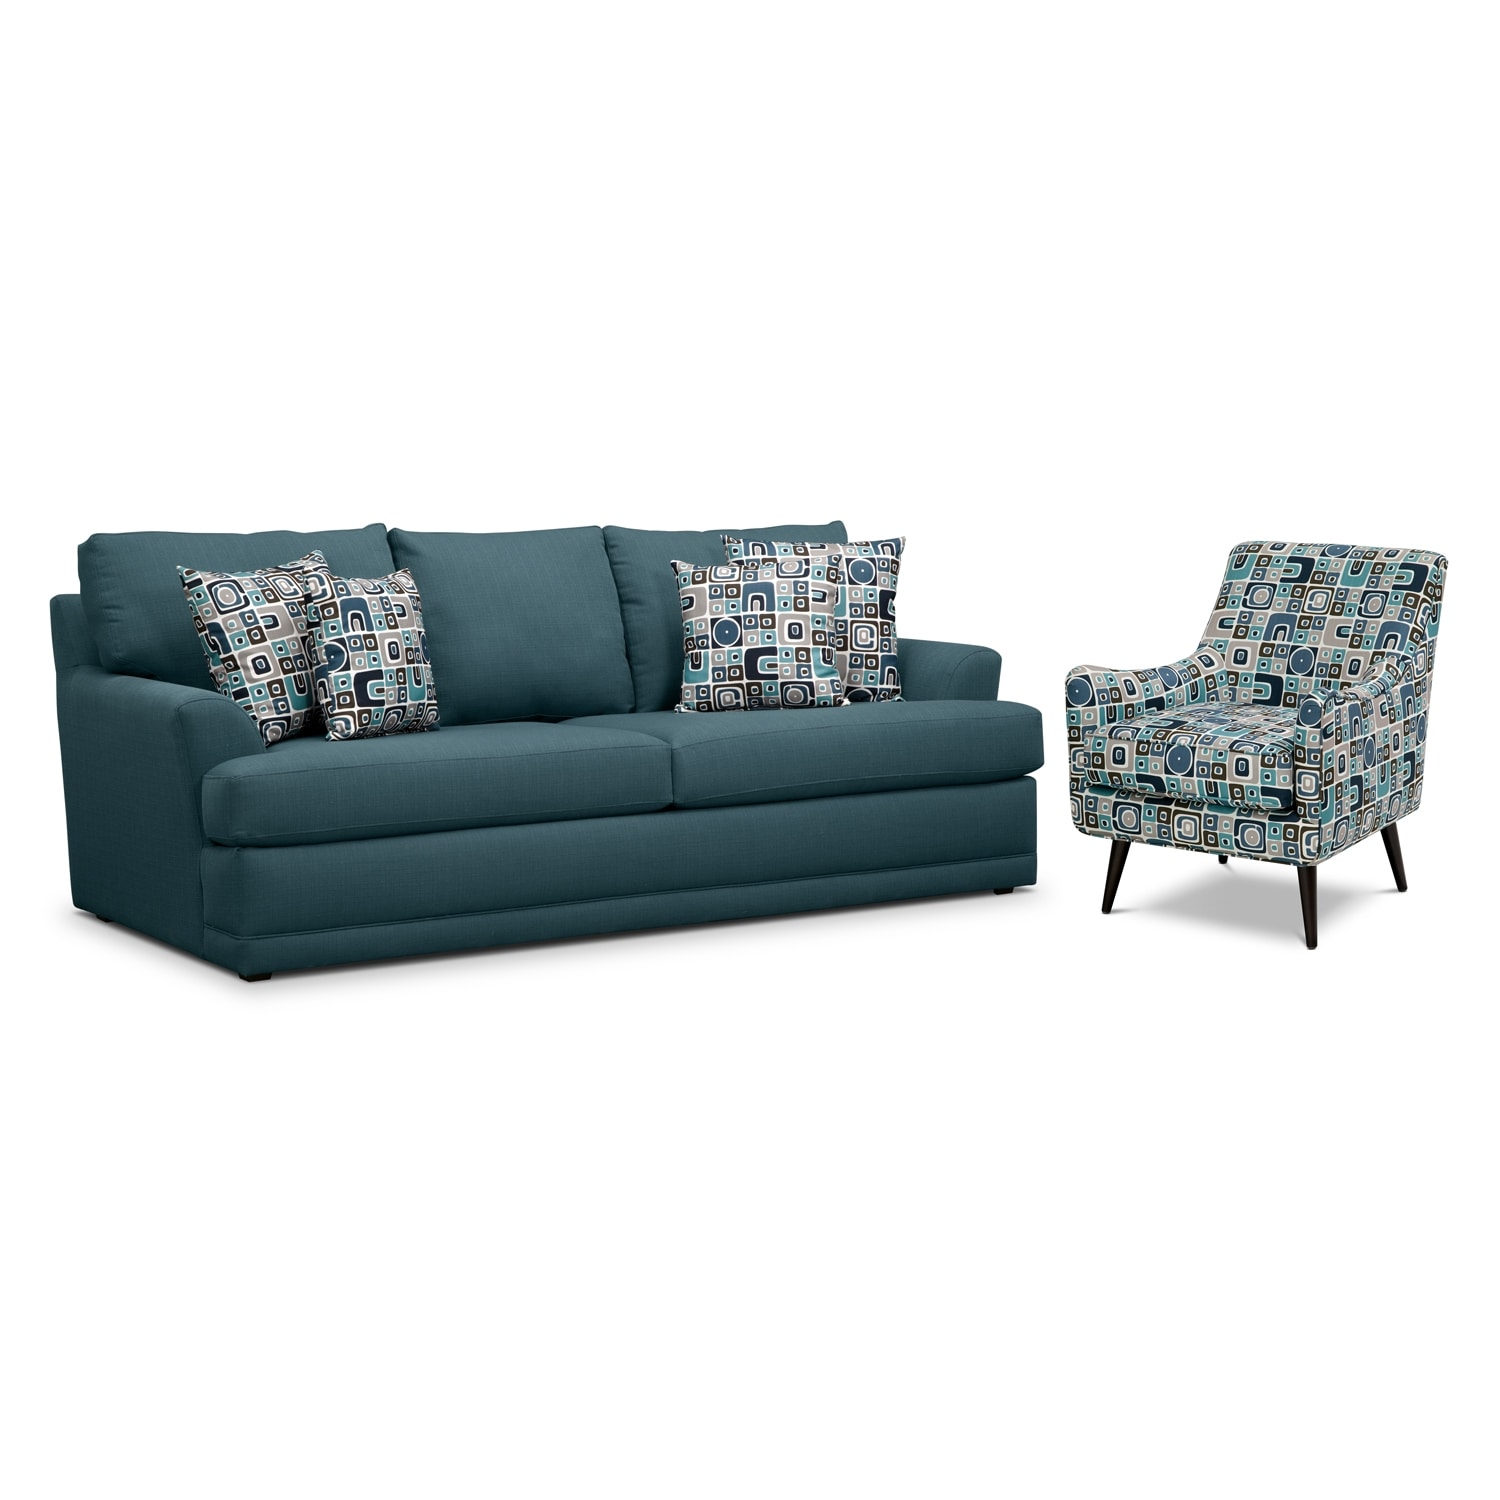 Living Room Furniture - Kismet 2 Pc. Sleeper Living Room with Accent Chair and Memory Foam Mattress - Teal